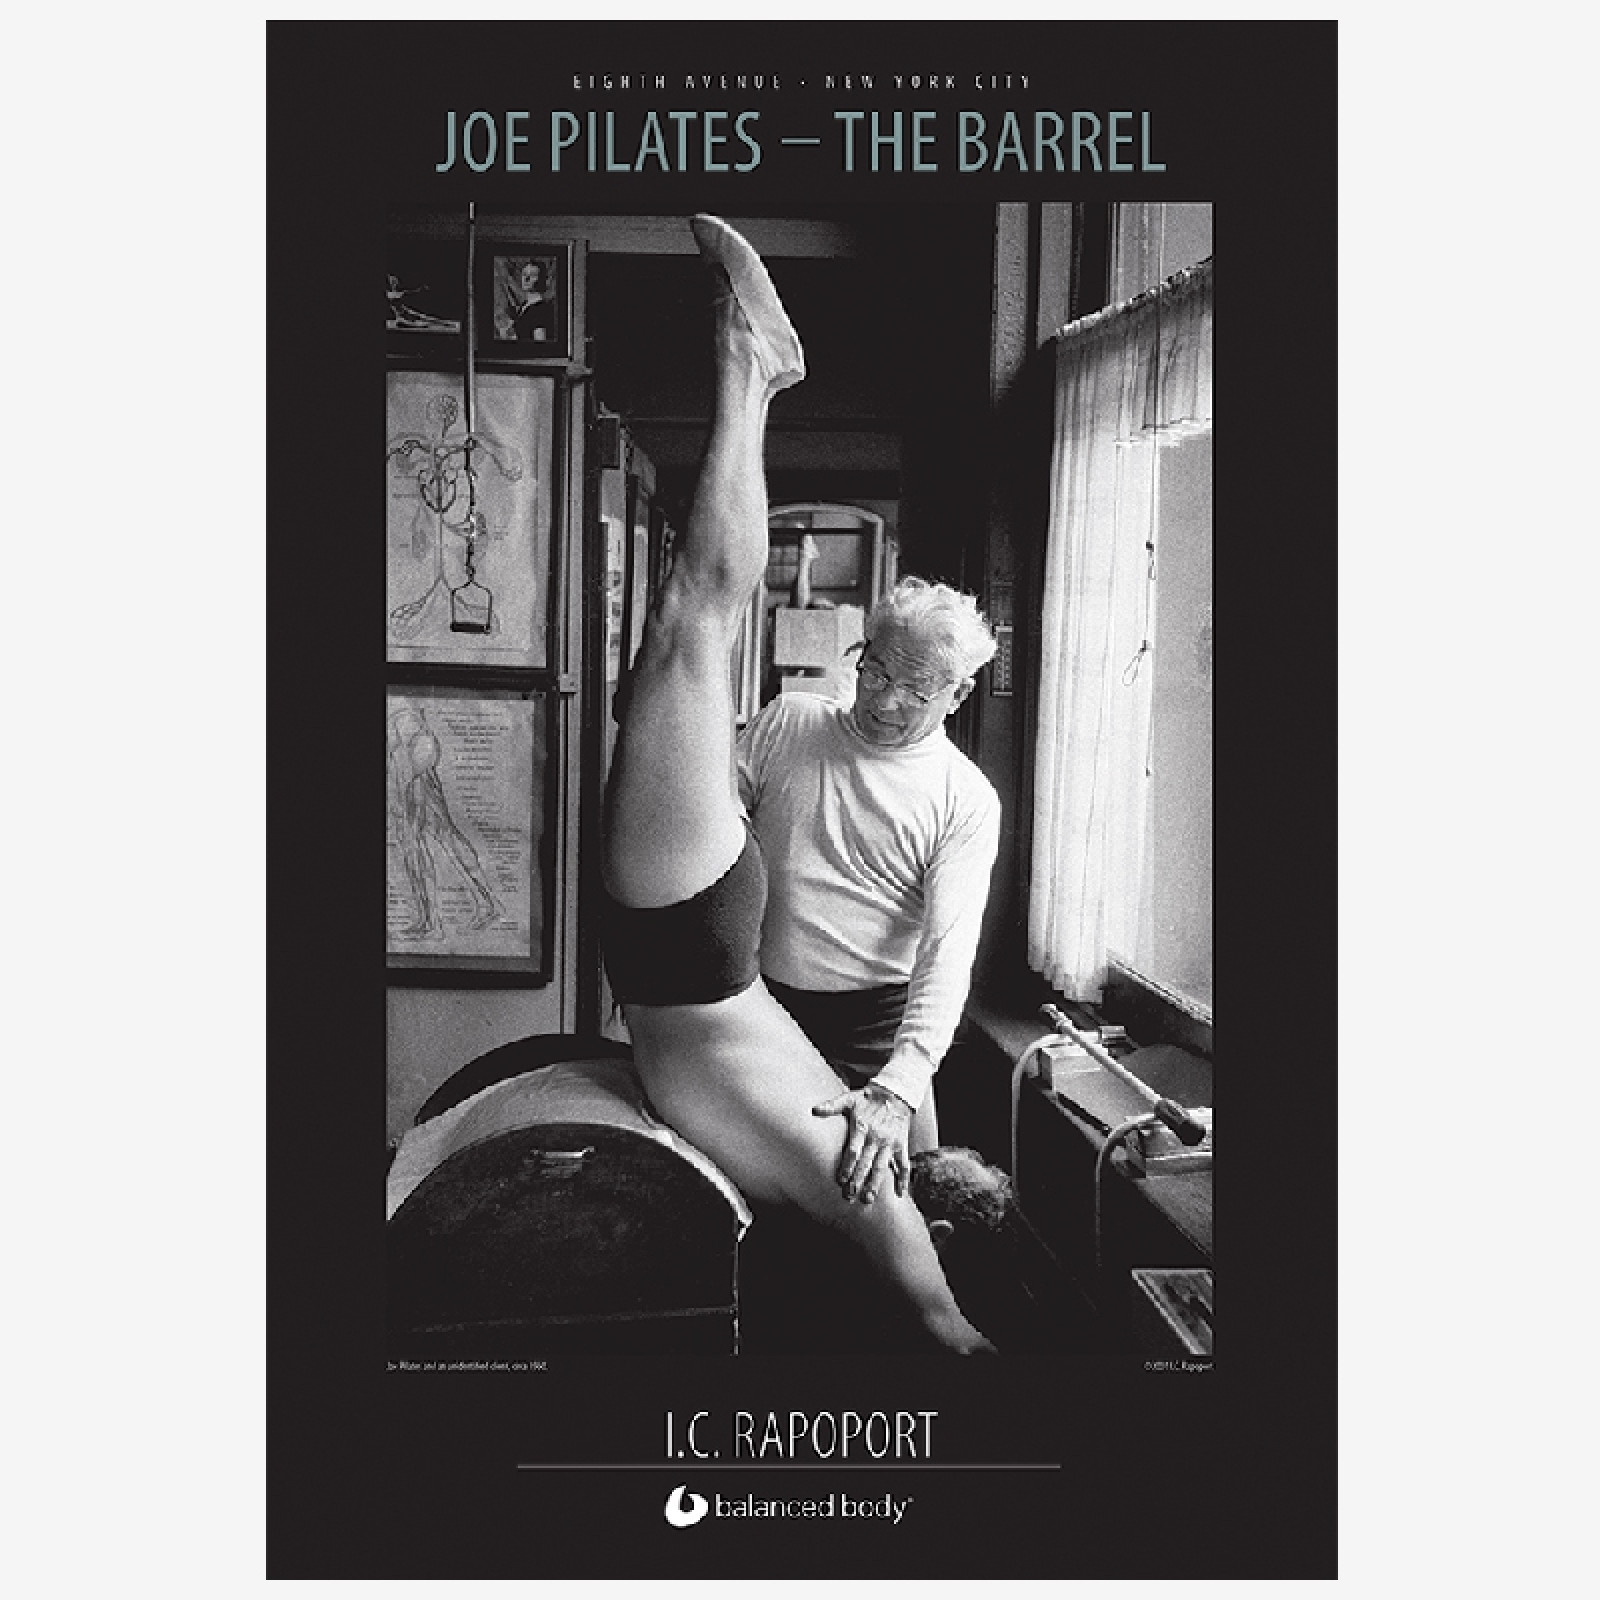 Joe Pilates - Barrel Poster